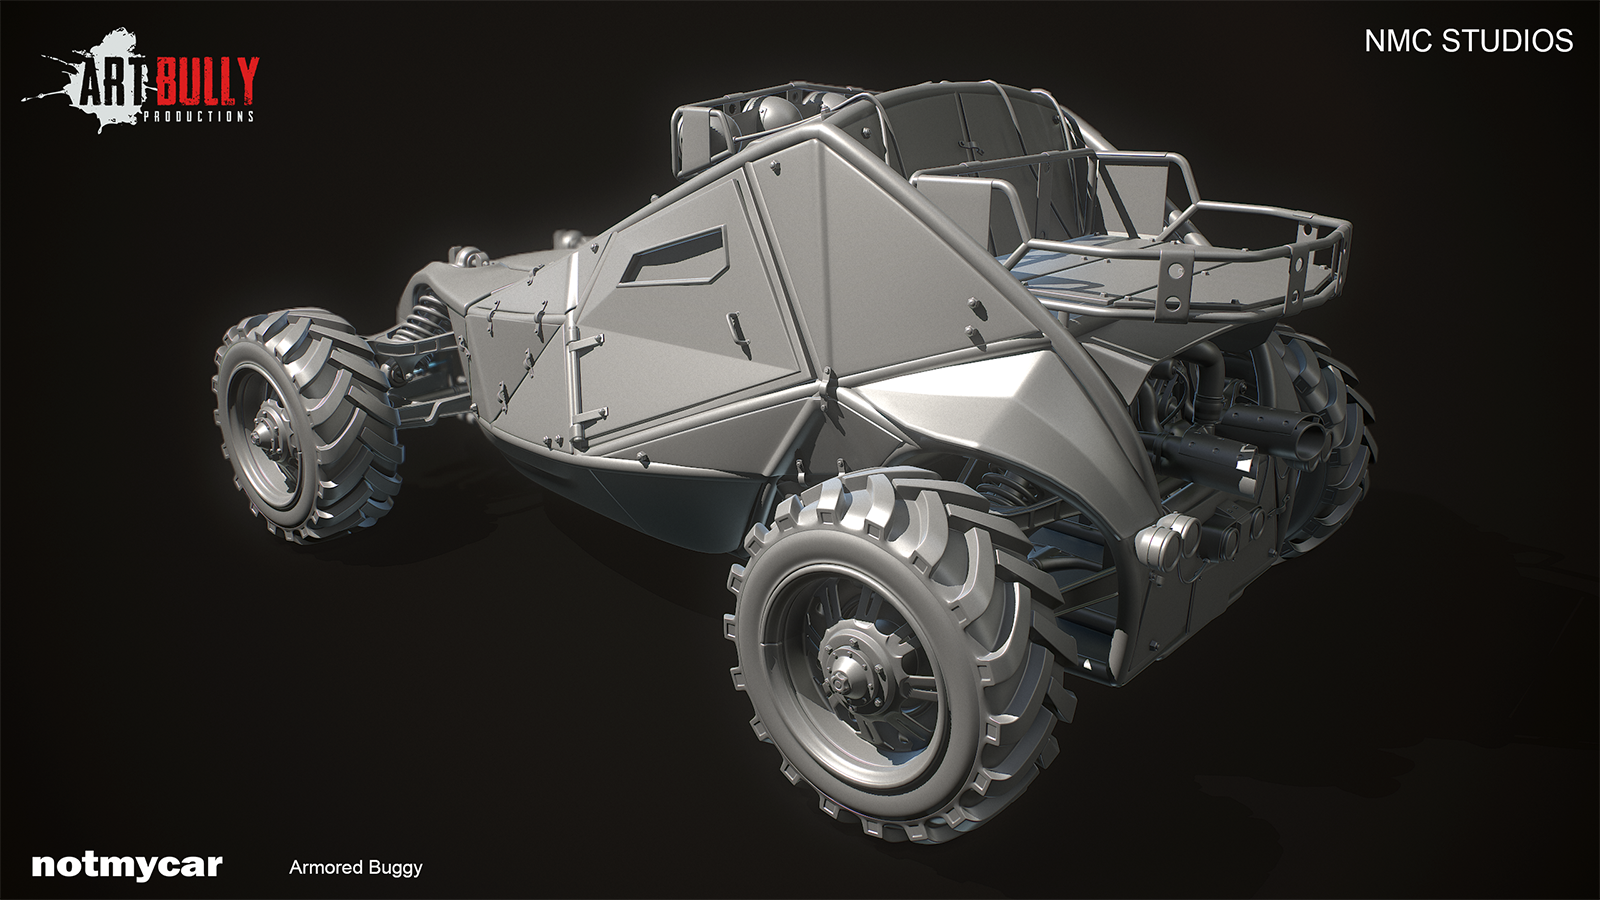 Artbully.co_NMC_Armored_Buggy_Back_High.png